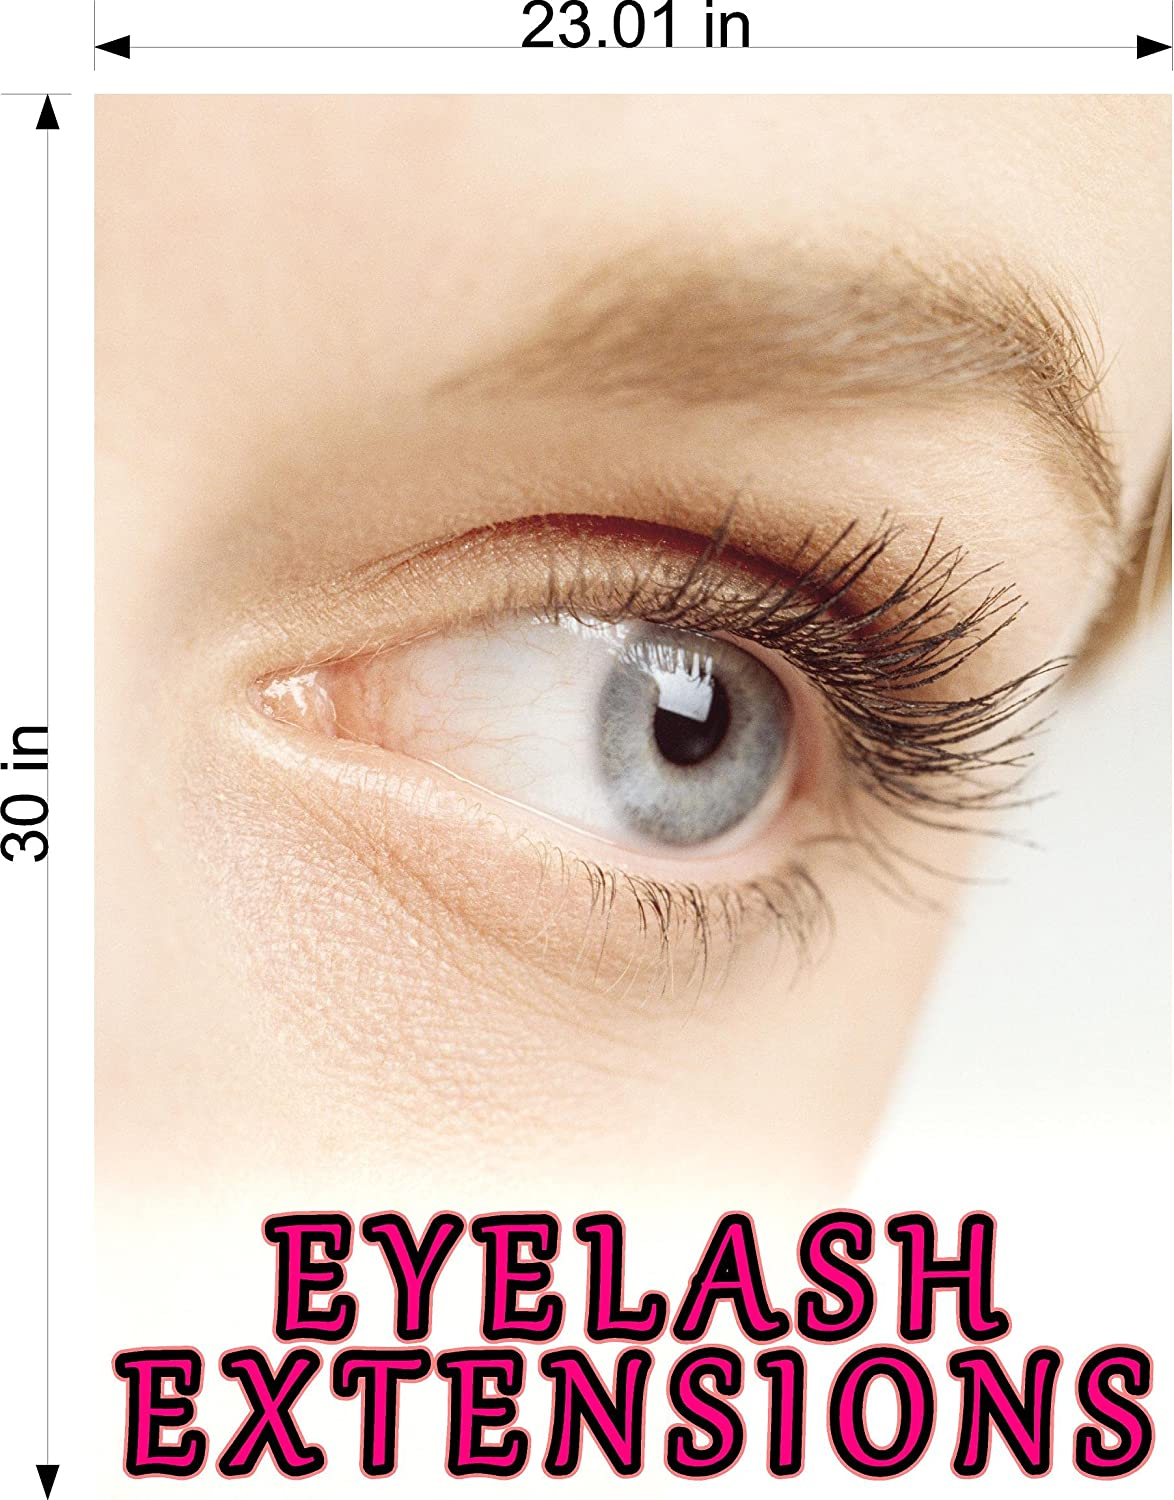 dbab698aafc Cmyads.net Eyelash X Eyelashes Eye Lash Extensions Woman Cosmetic  Perforated Window removing hair See Though Salon Poster Vinyl 70/30  Tweezers Thin Out ...